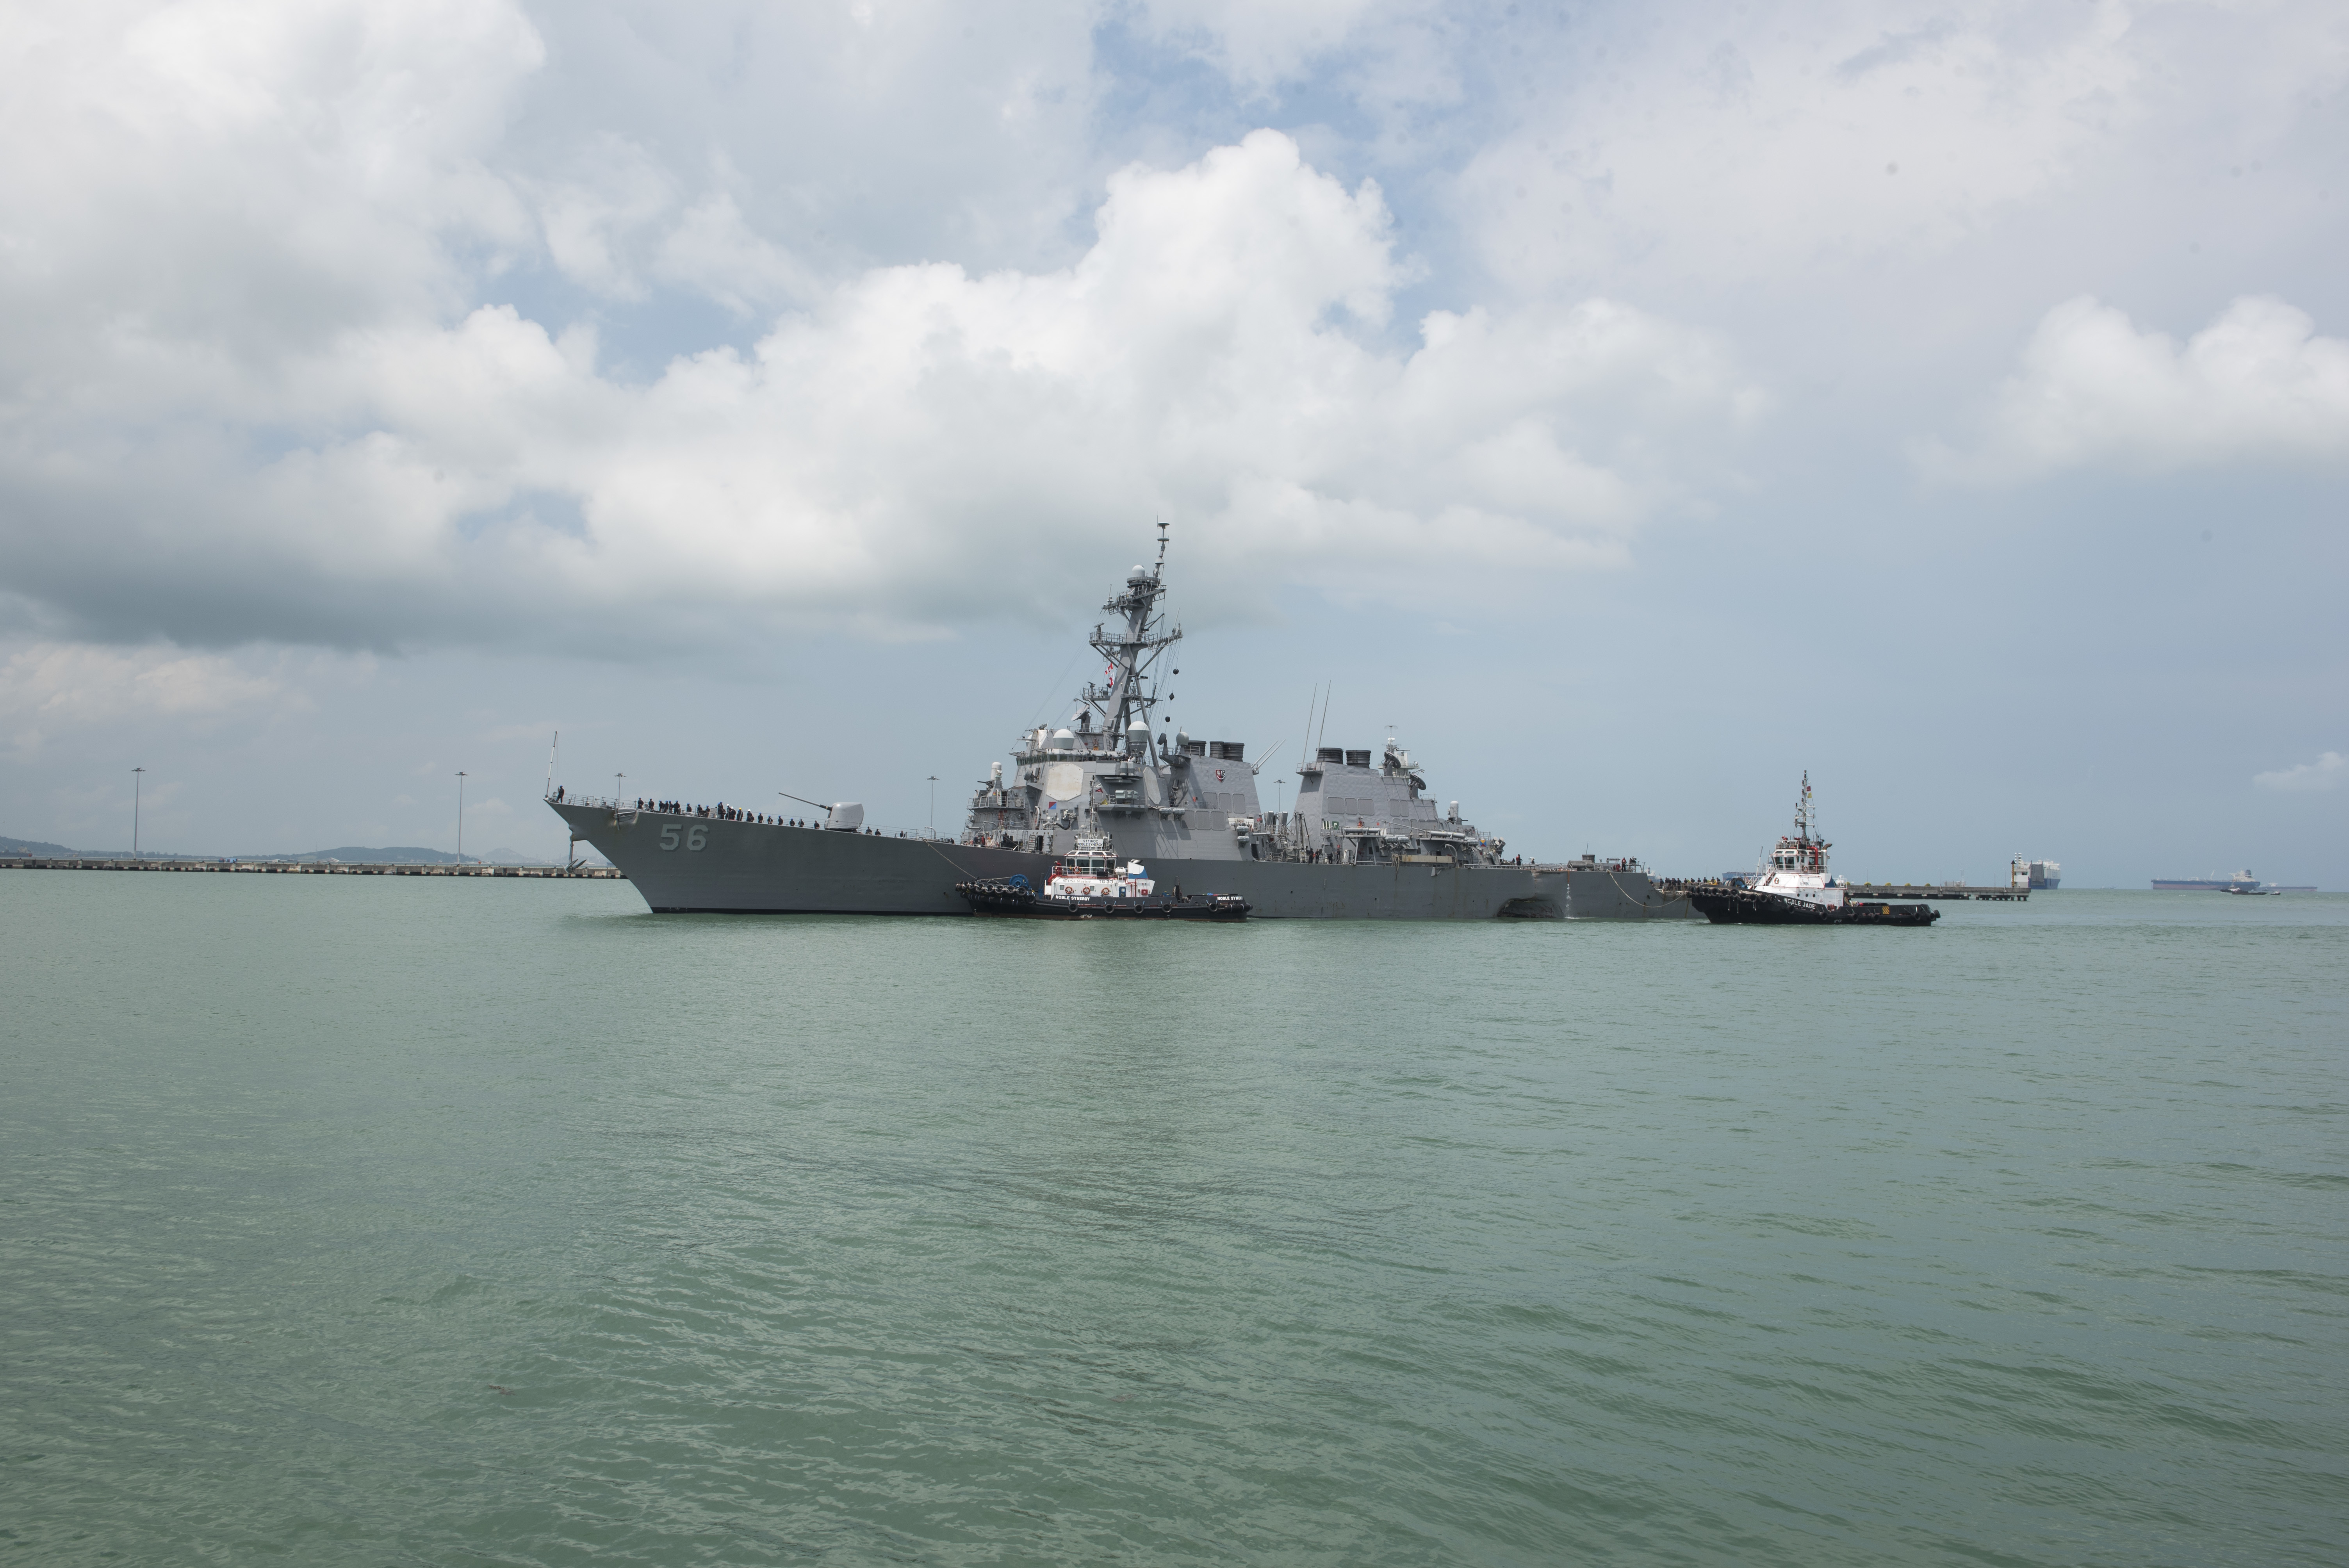 NTSB Accident Report on Fatal 2017 USS John McCain Collision off